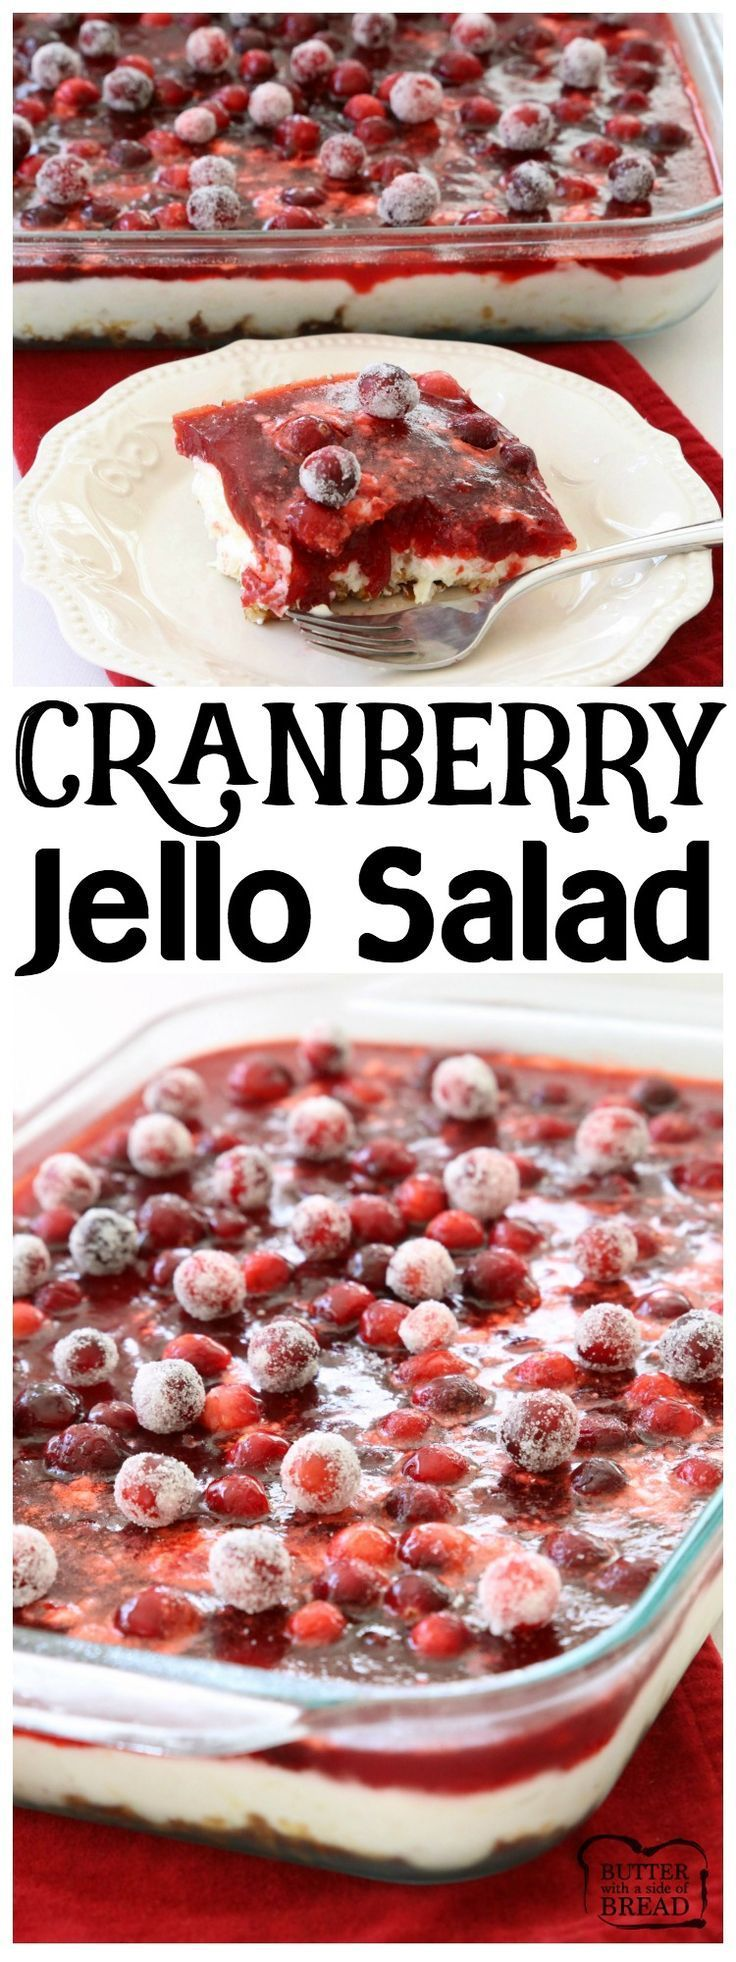 Cranberry Jello Salad made with 3 festive, delicious layers of pretzels, pudding, cranberries & Jello! Impressive, easy addition to your #holiday #dinner. #Cranberry #Jello #Salad recipe perfect for #Thanksgiving and #Christmas from Butter With A Side of  (jello fruit snacks)